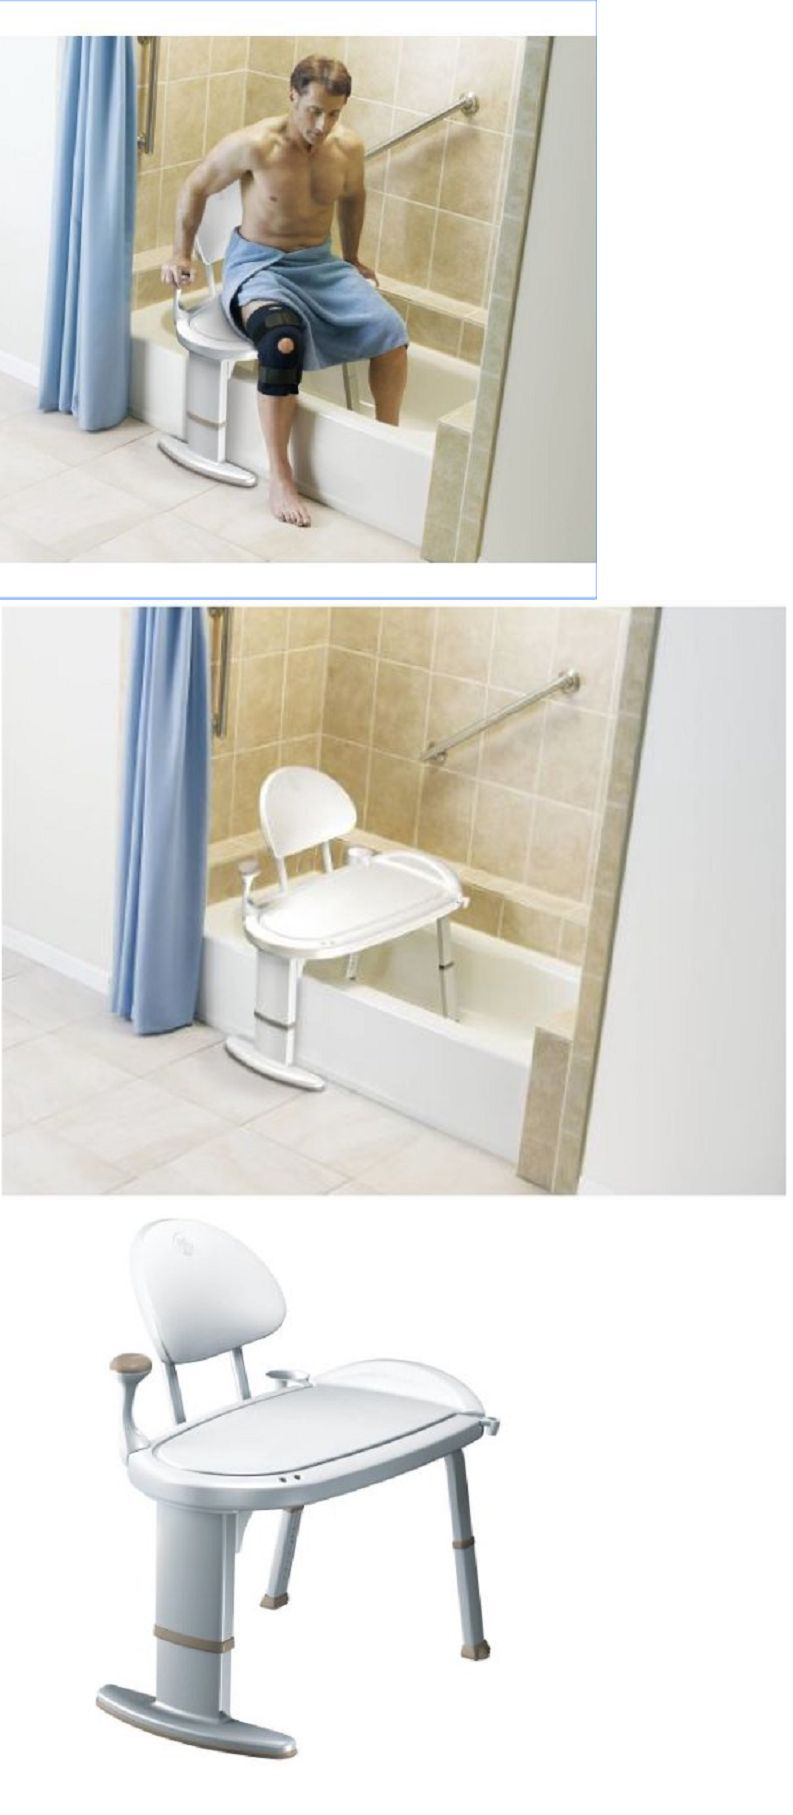 Transfer Boards and Benches: Handicapped Shower Chair Handicap ...